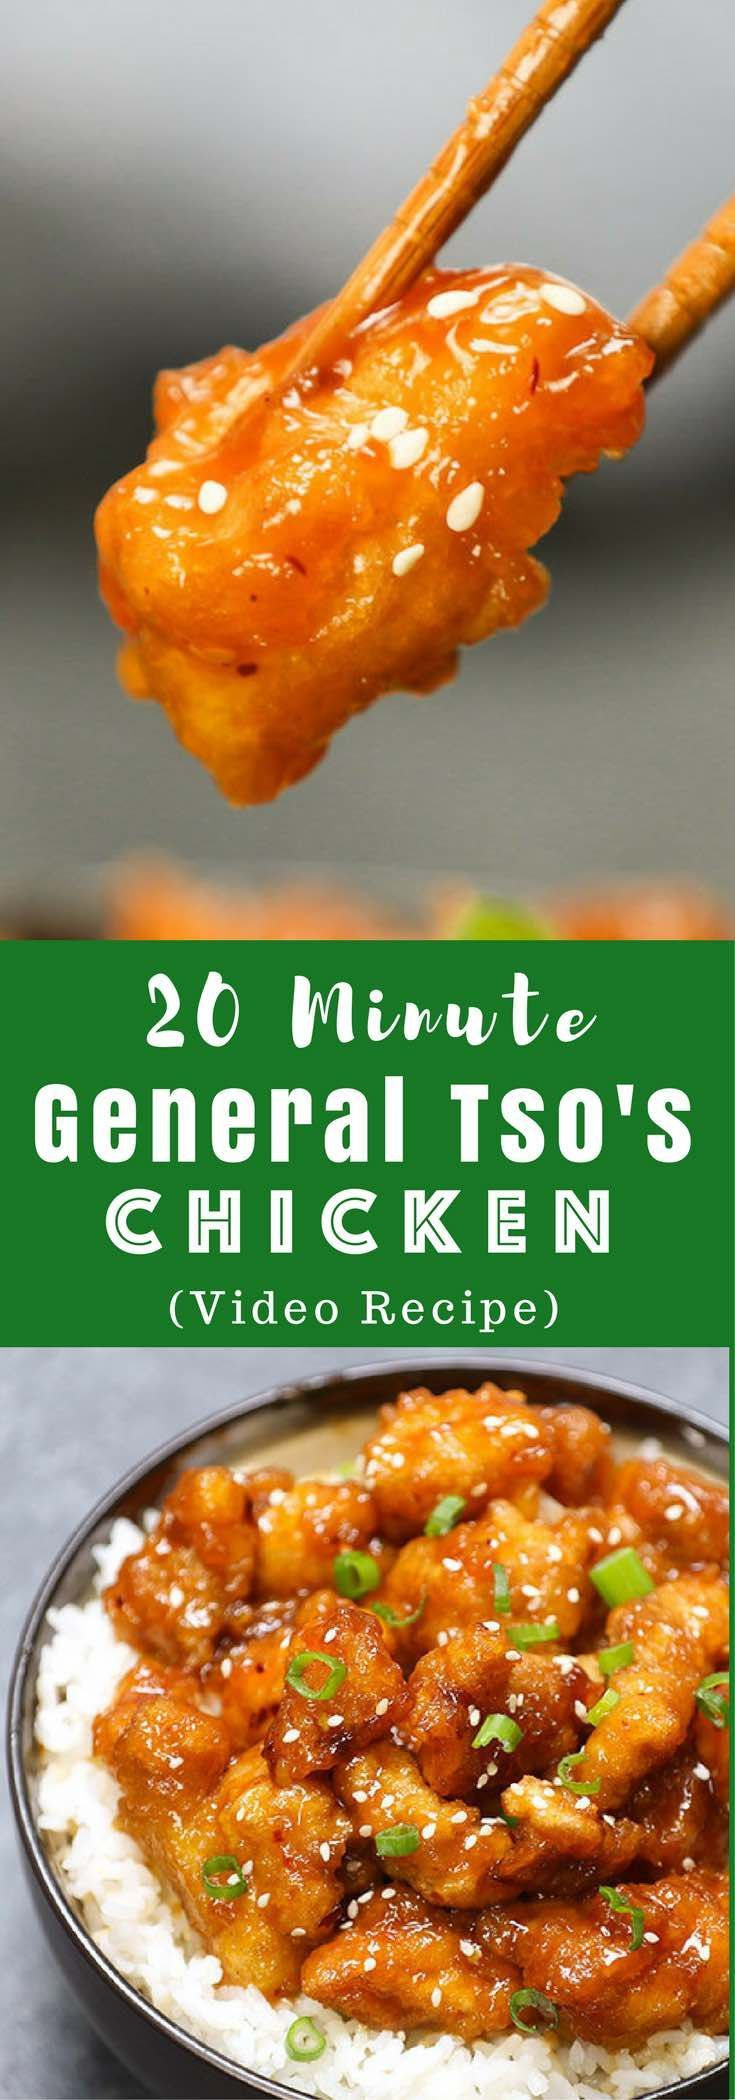 Better than take-out General Tso's Chicken for the perfect easy weeknight dish- crispy, tender and sweet! It will be on your dinner table in 20 minutes. All you need is just a few simple ingredients: chicken breast, corn starch, garlic, ginger hoisin sauce, soy sauce, rice vinegar and sugar. So delicious! Easy dinner recipe. Video recipe. | Tipbuzz.com